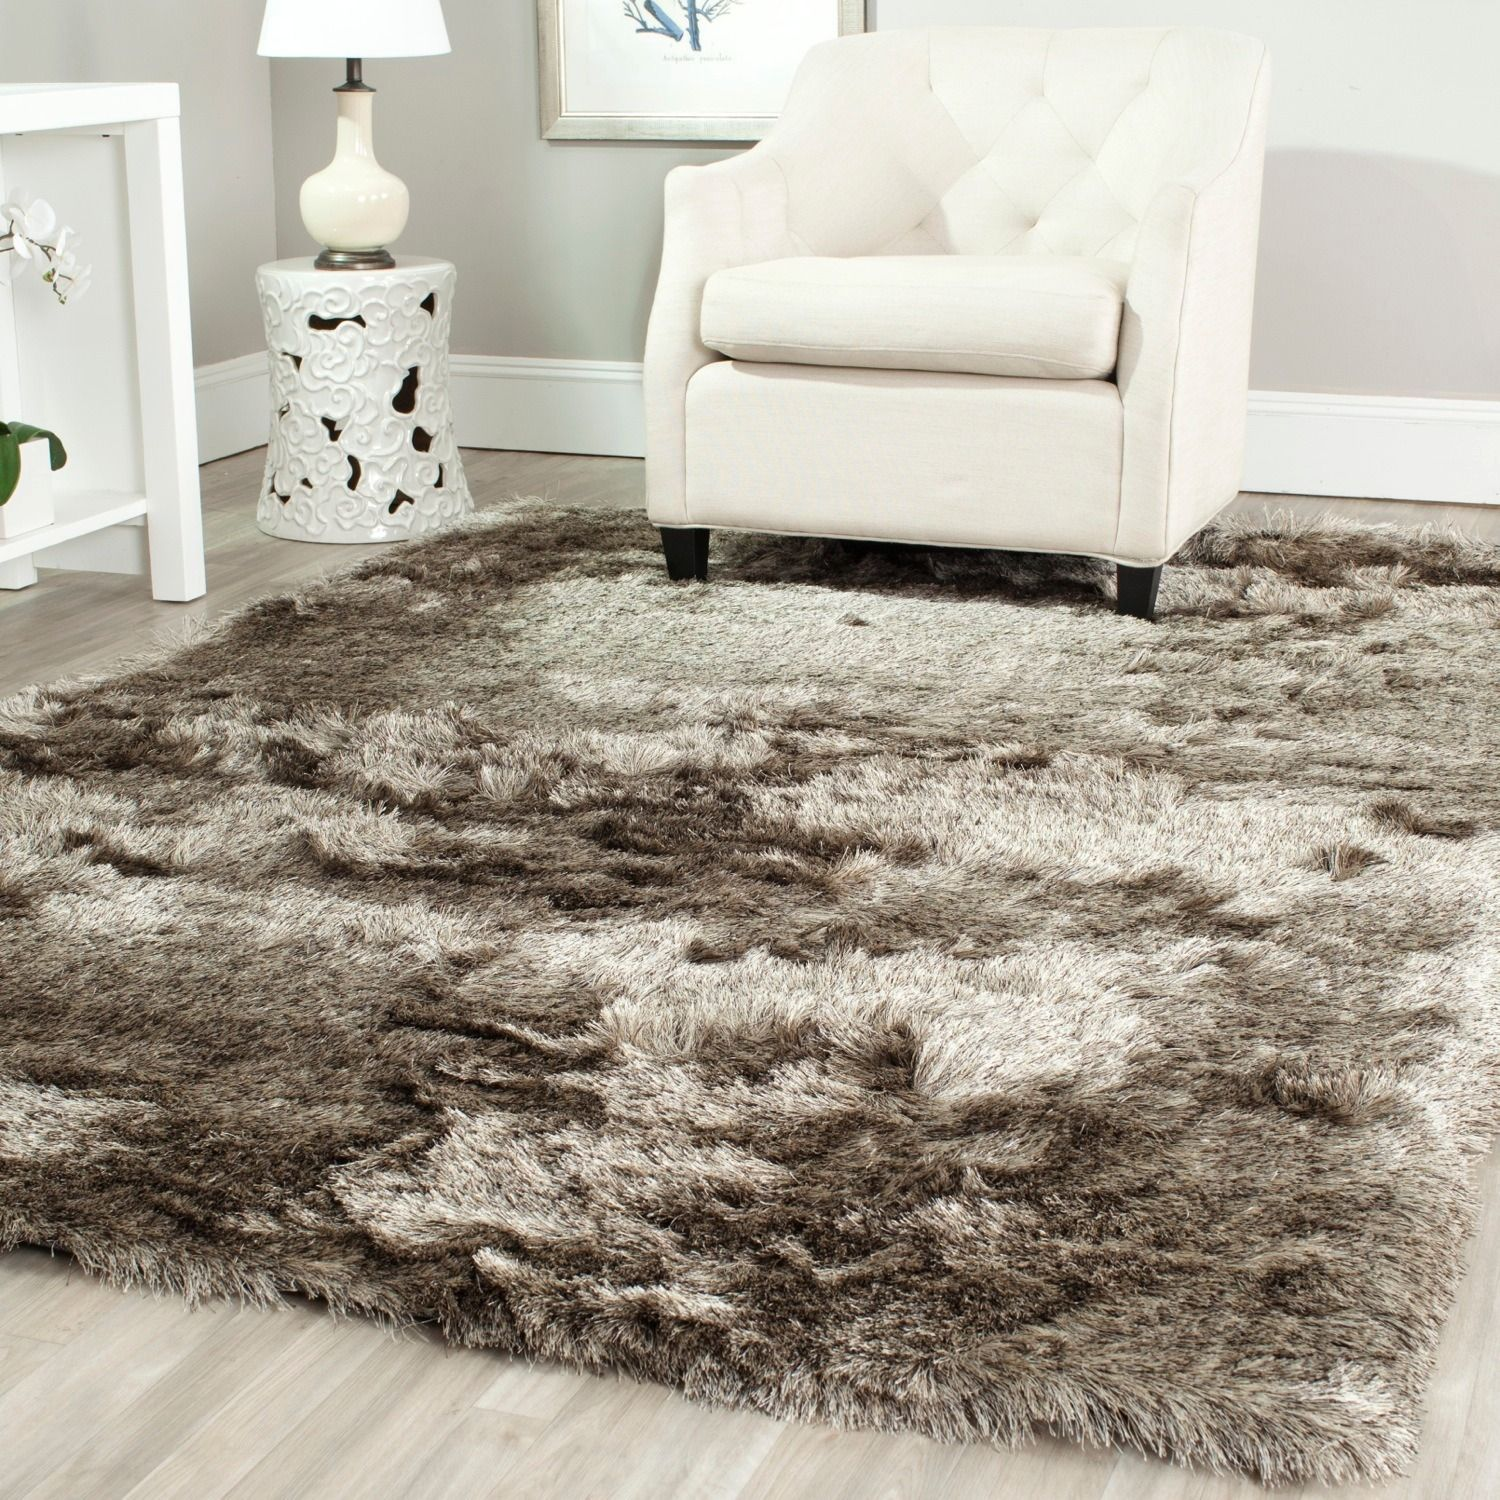 Safavieh Handmade Silken Paris Shag Sable Brown Polyester Area Rug (4u0027 X 6u0027